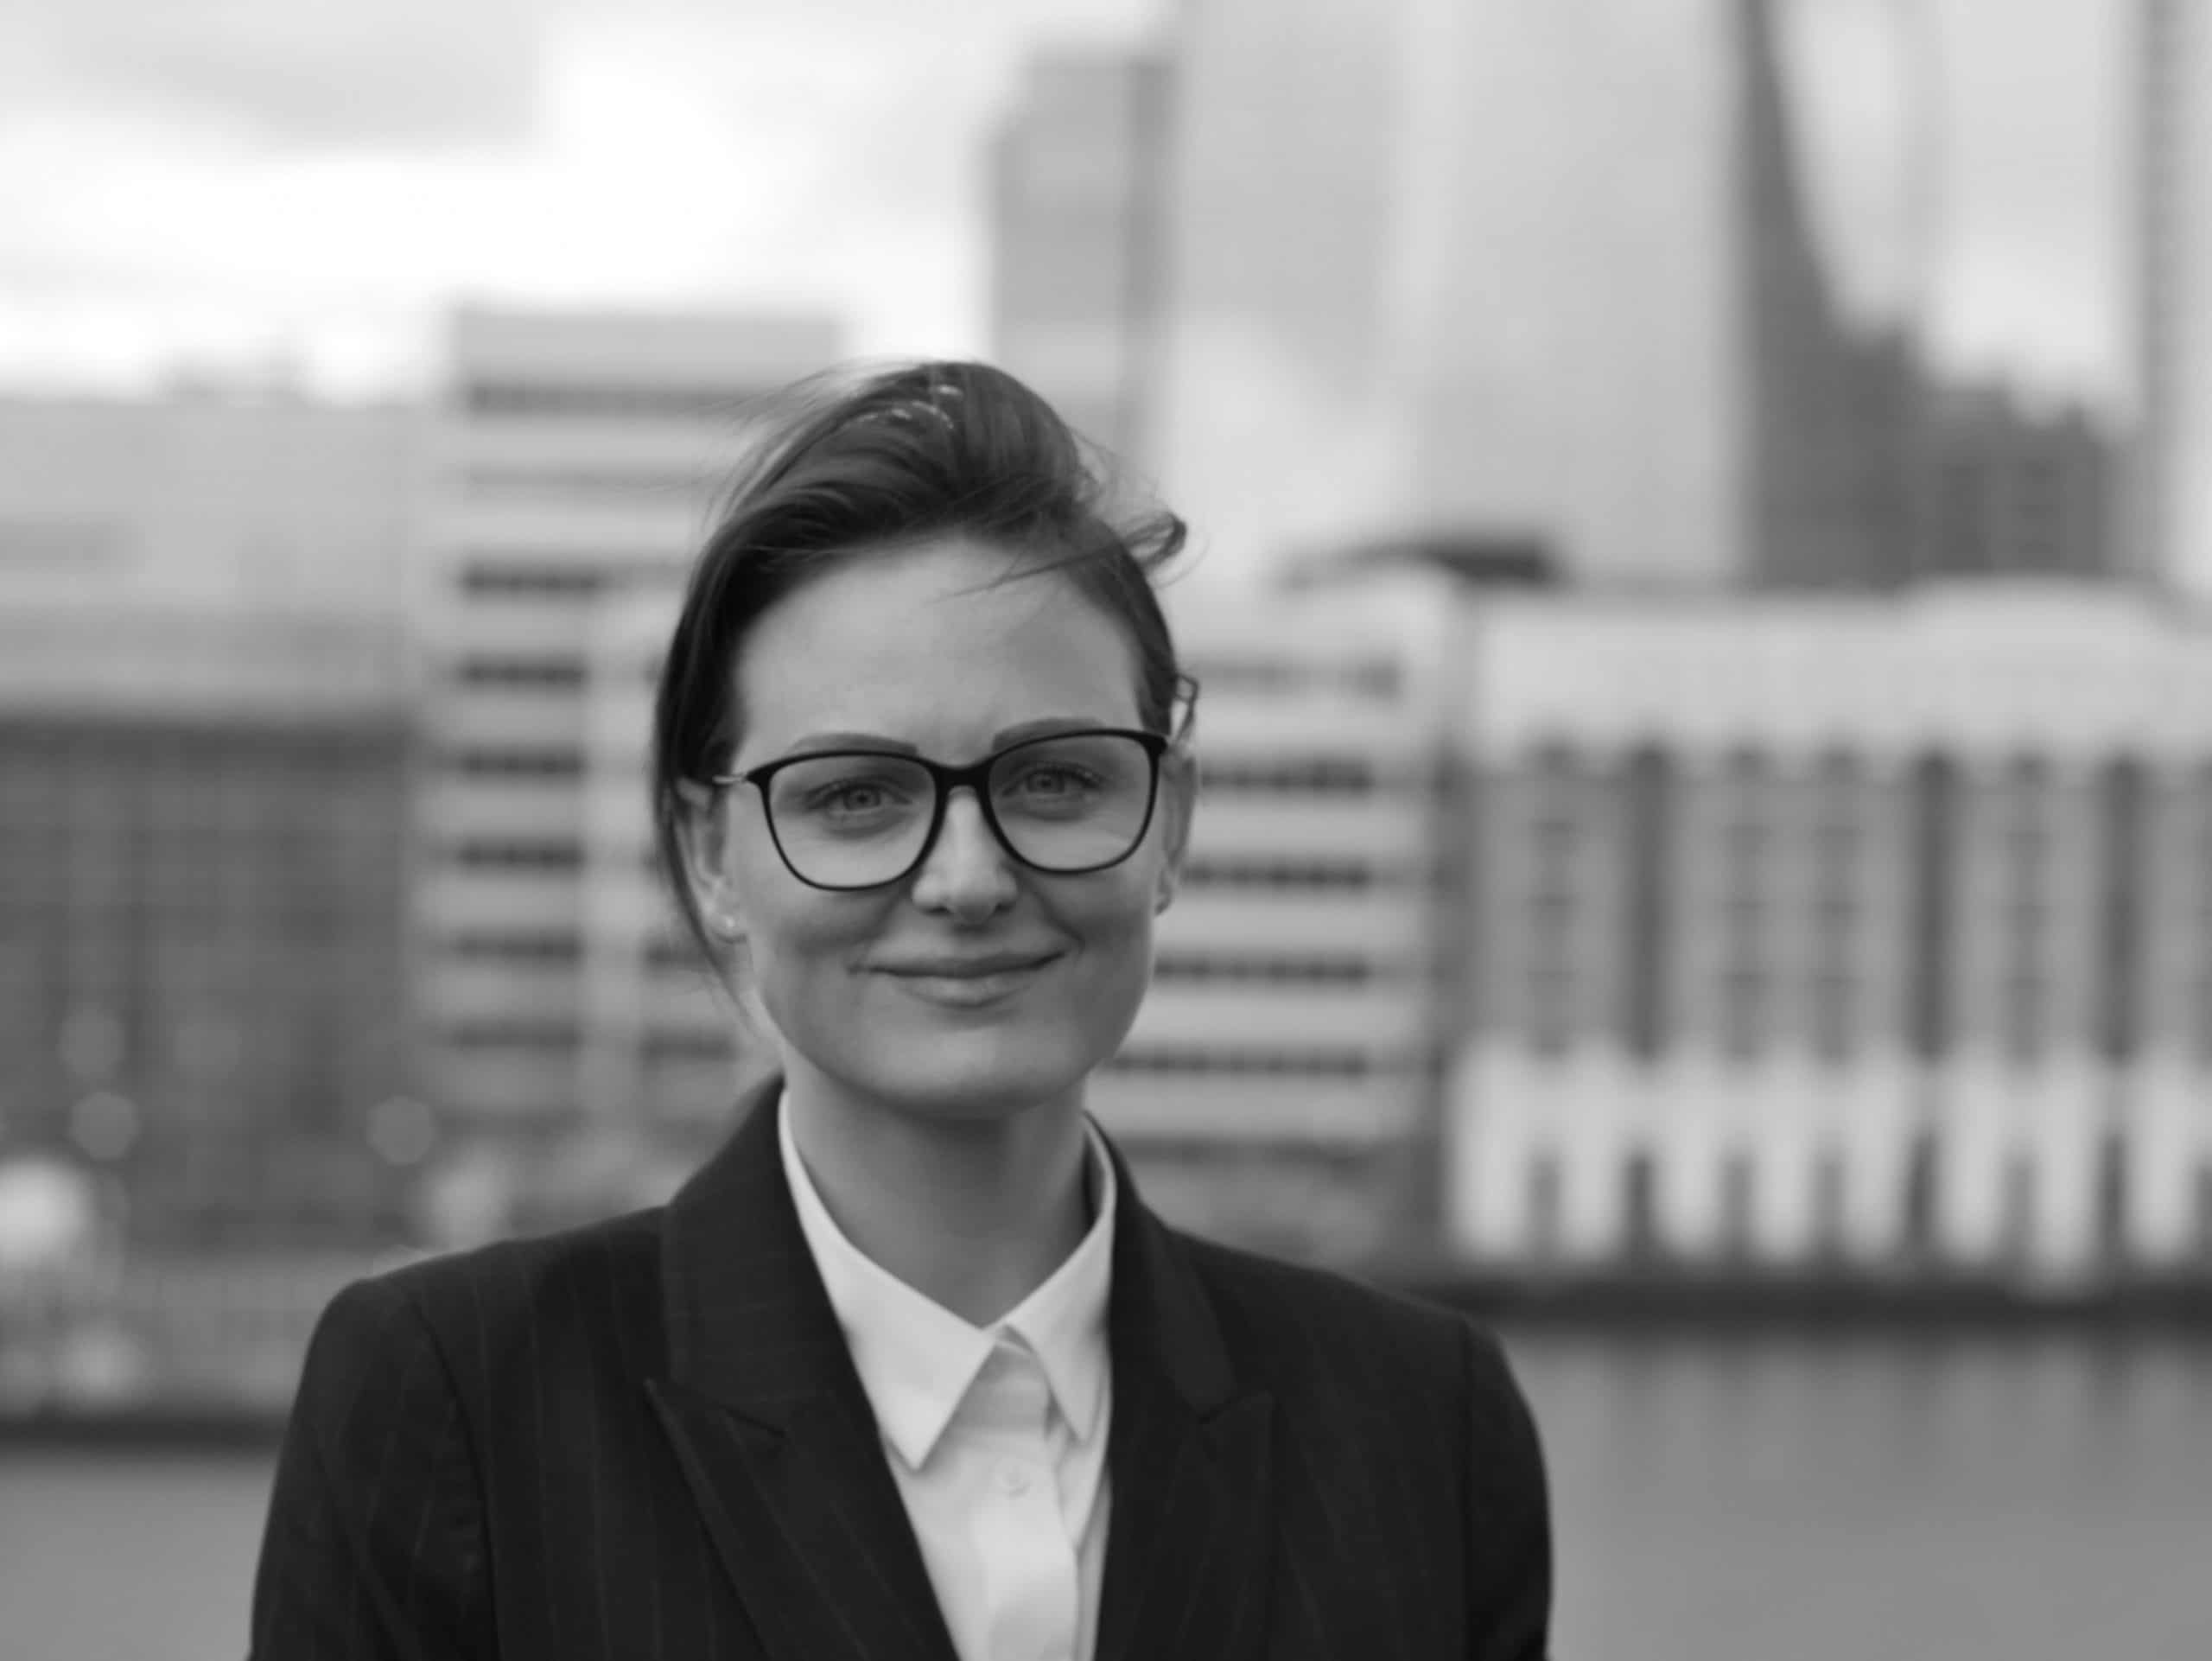 #HumansOfHalkin, Danielle, Field Sales Executive Halkin Offices